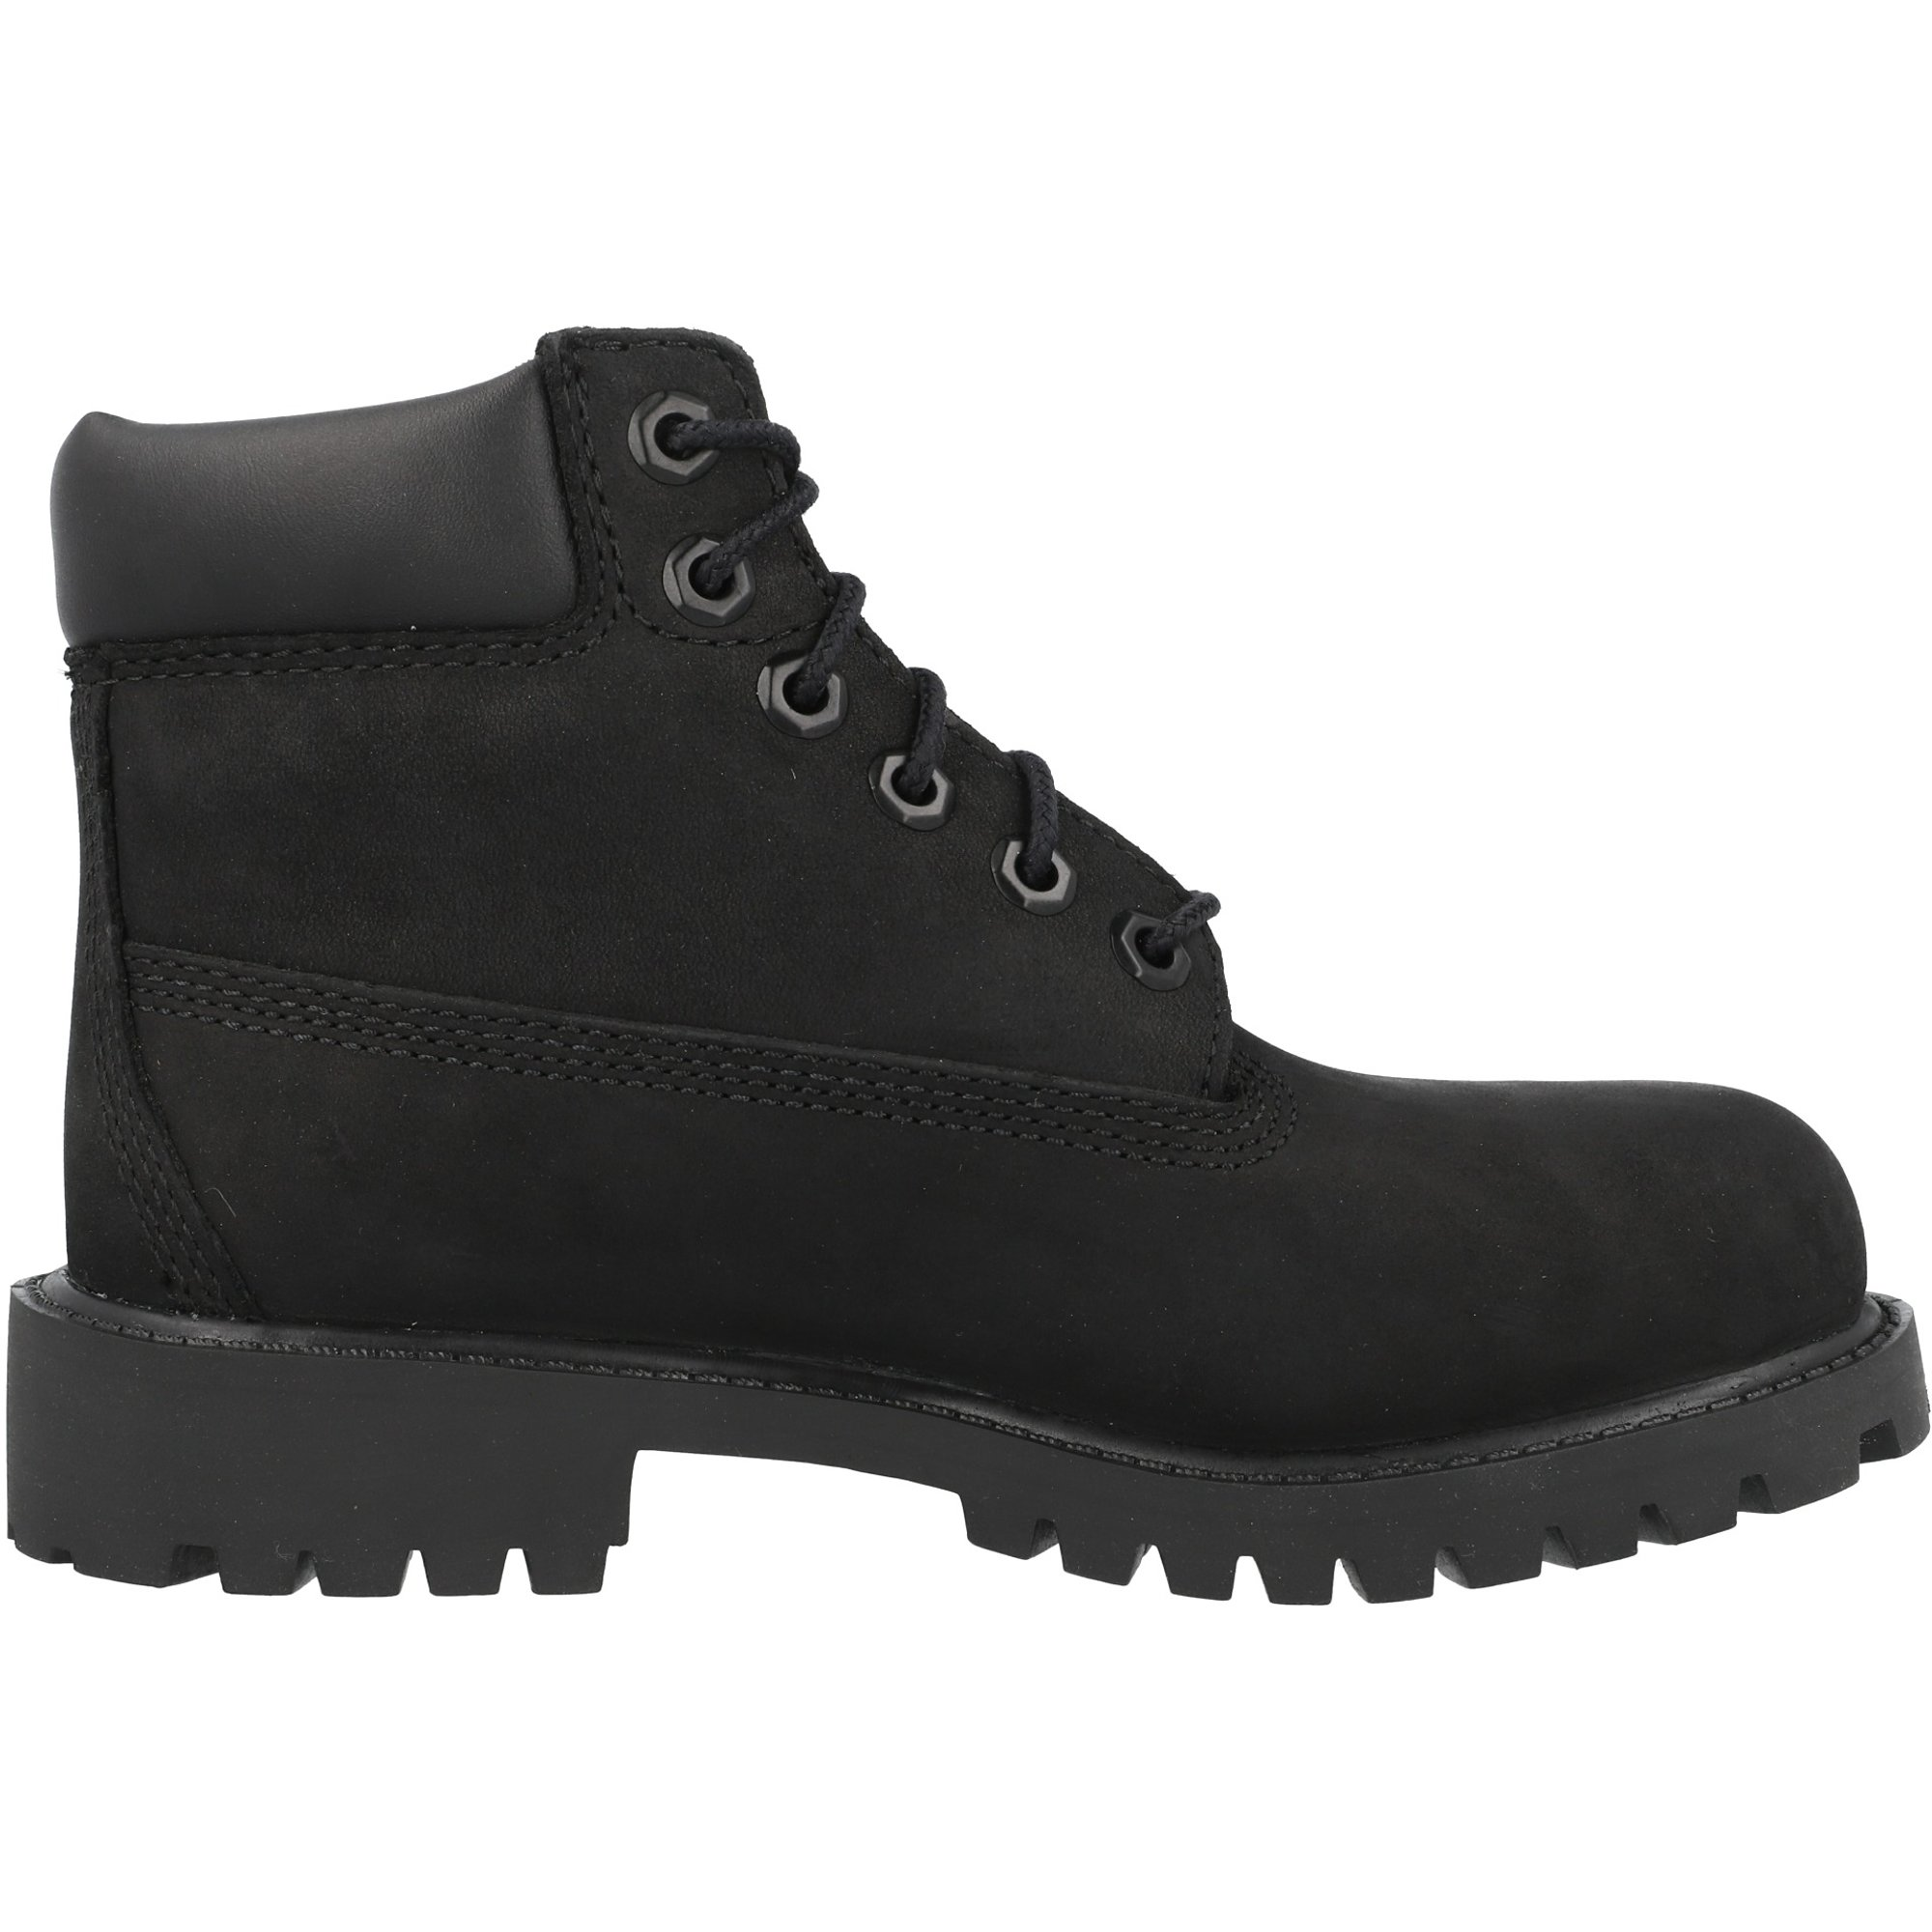 Timberland 6 Inch Classic Boot Y Black Nubuck